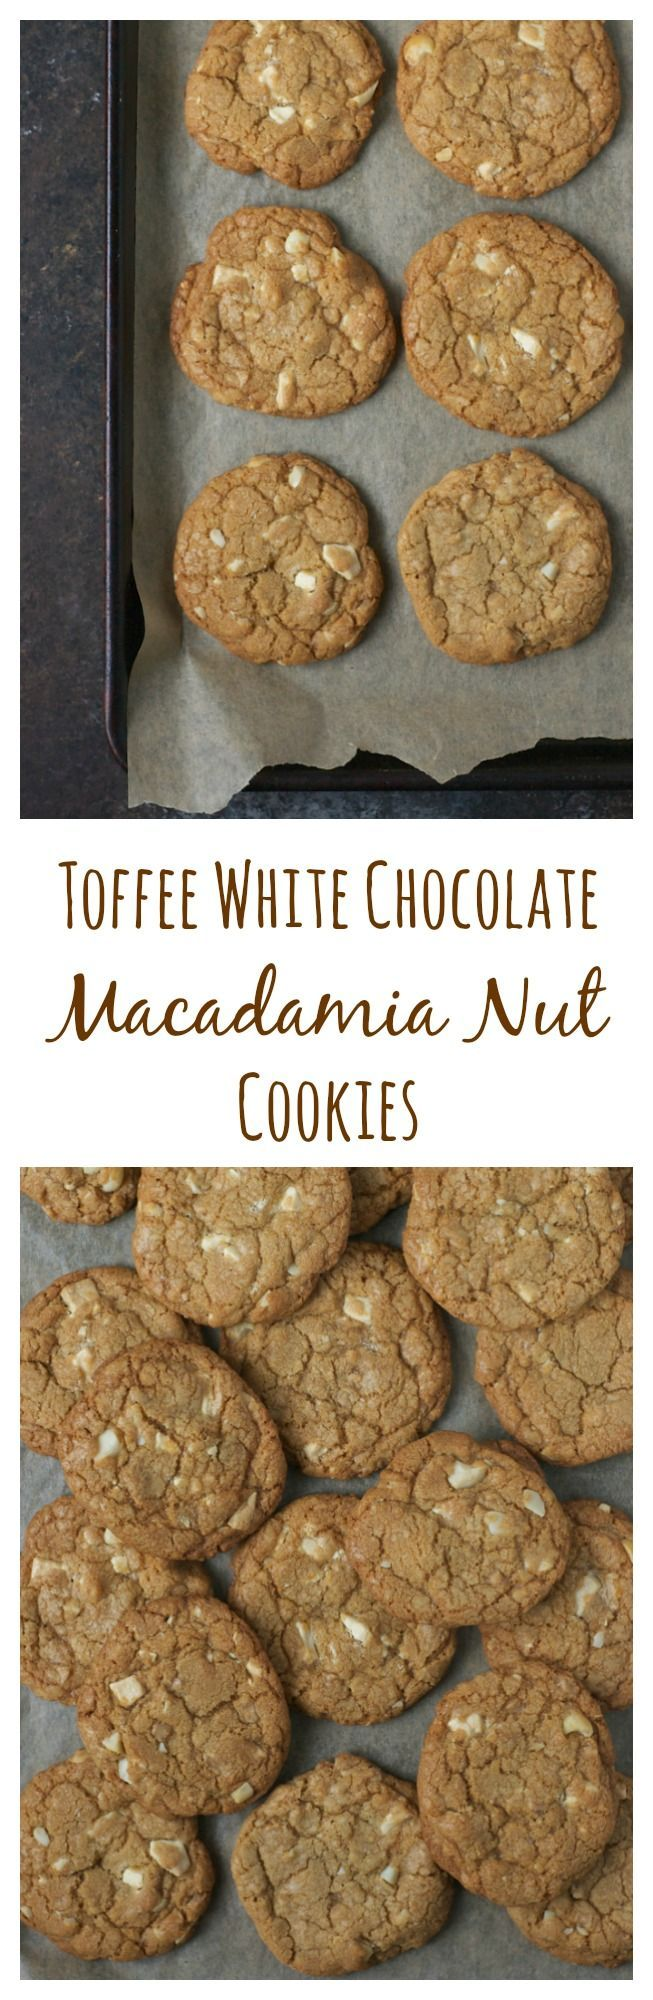 Crunchy at the edges and soft in the middle, these white chocolate macadamia nut cookies are loaded with toffee bits. A homemade version of the popular Whole Foods bakery cookie!